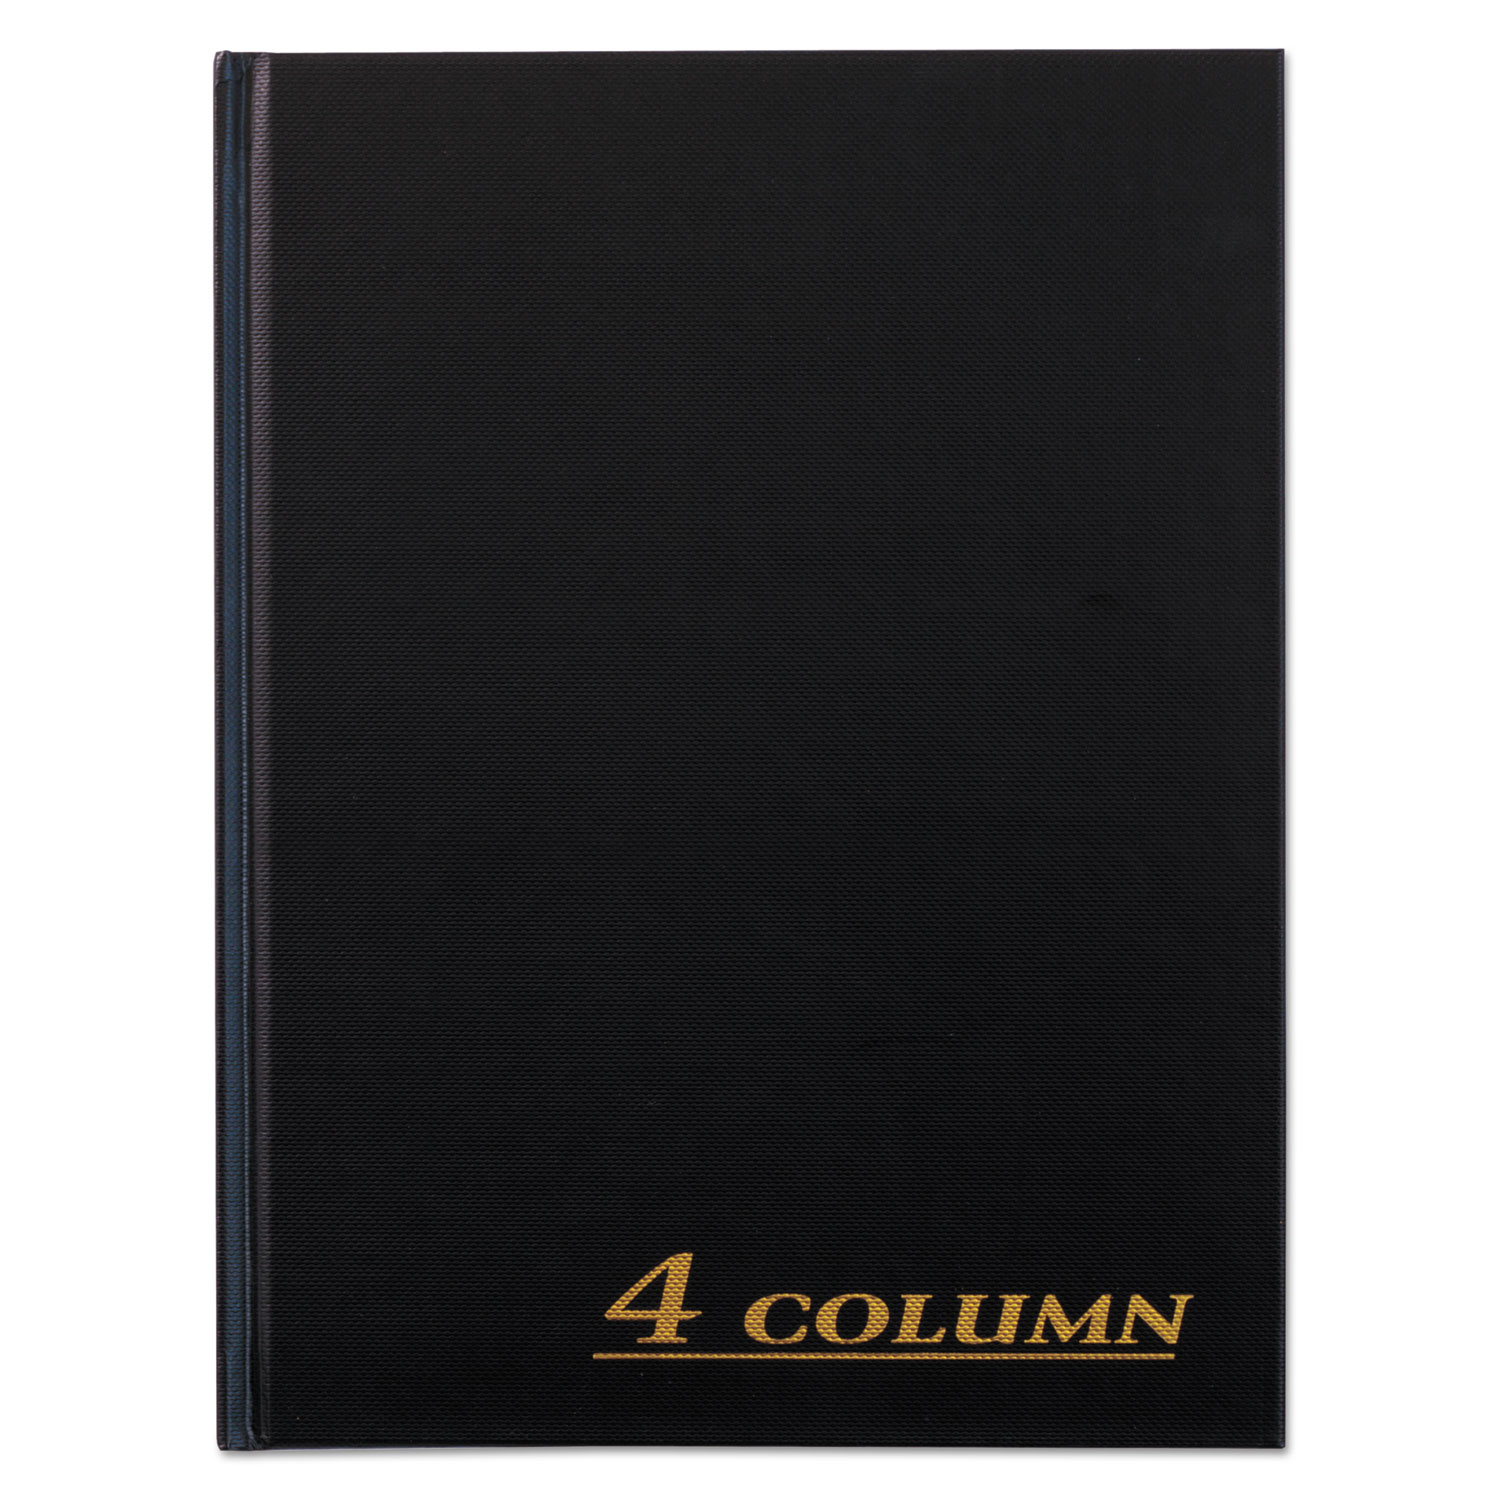 Account Book, 4 Column, Black Cover, 80 Pages, 7 x 9 1 4 by Cardinal Brands